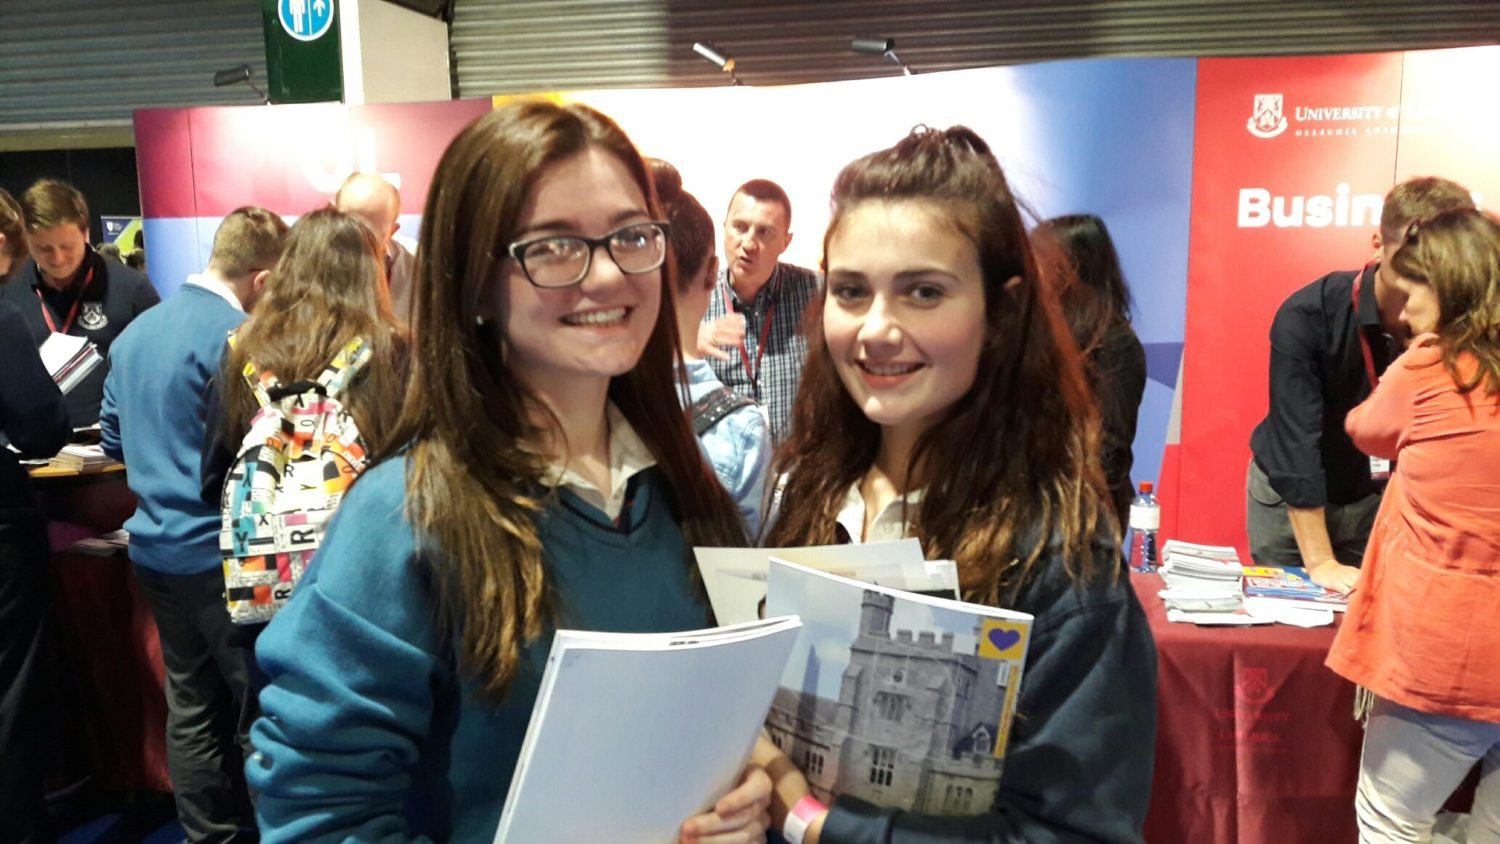 2016 Sept: Claire Mortell and Emma Herbert check out the career options available to them.